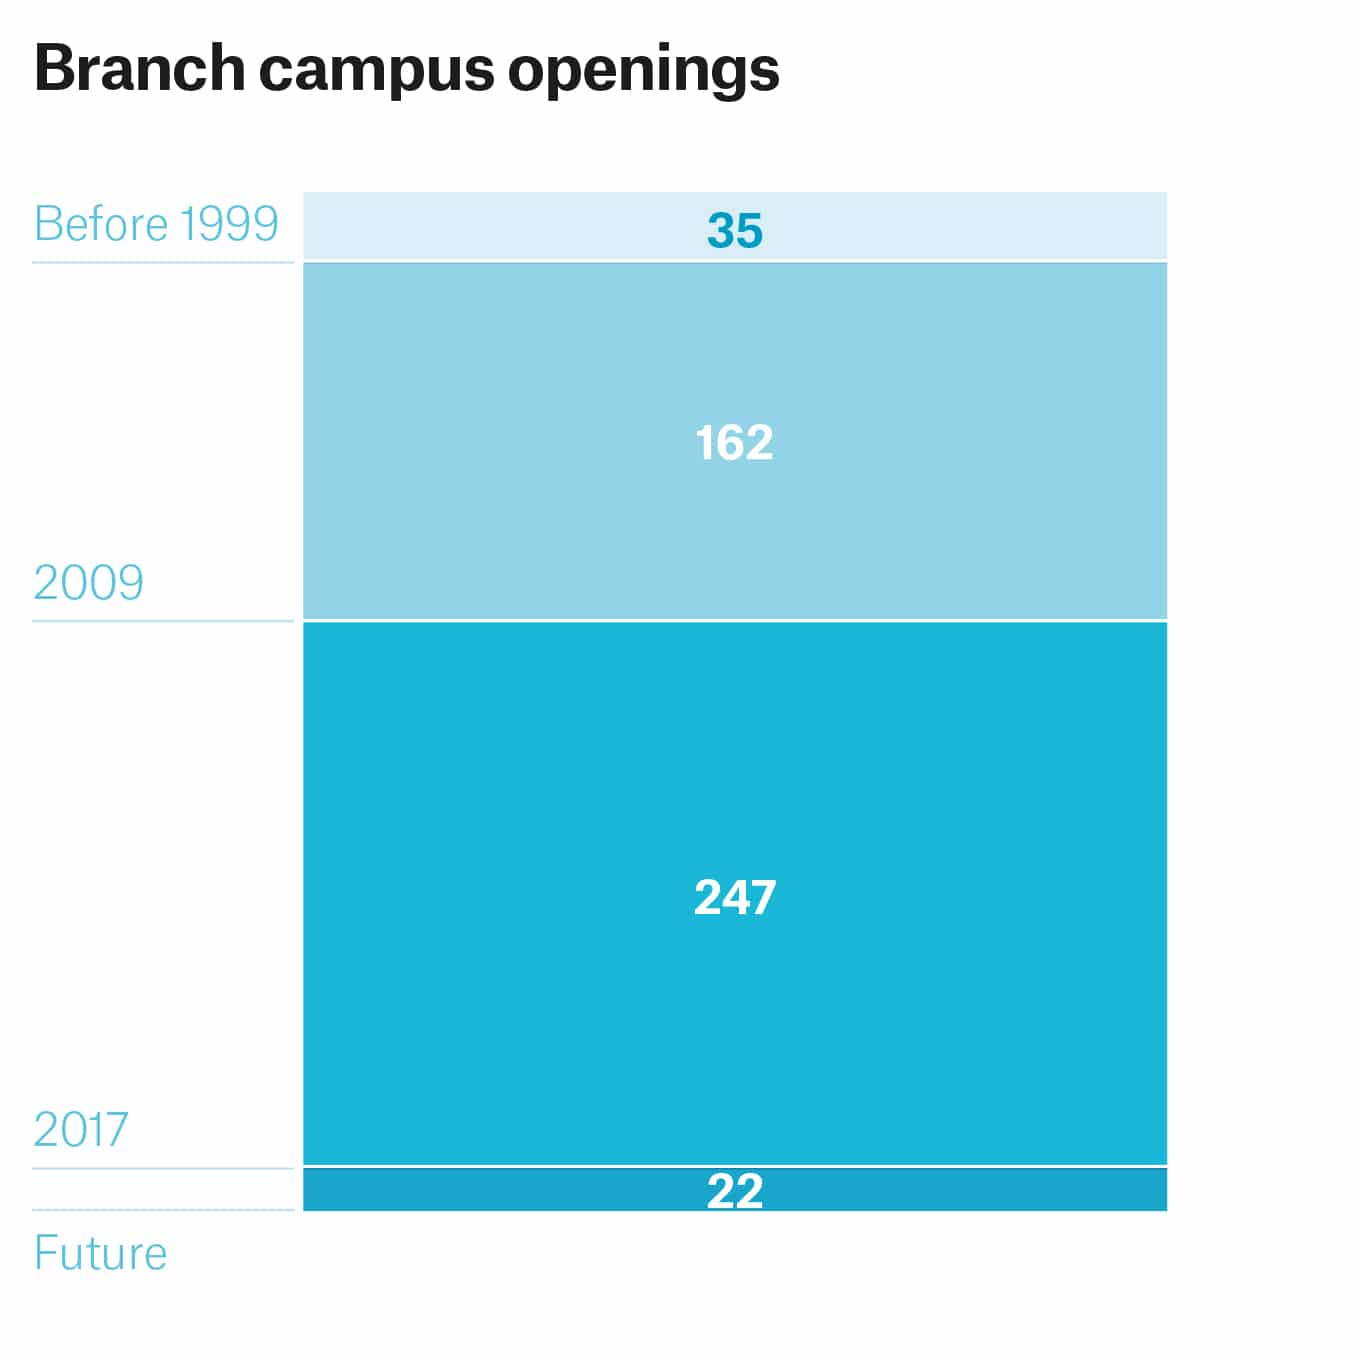 Branch Campus Openings Numbers Through Time